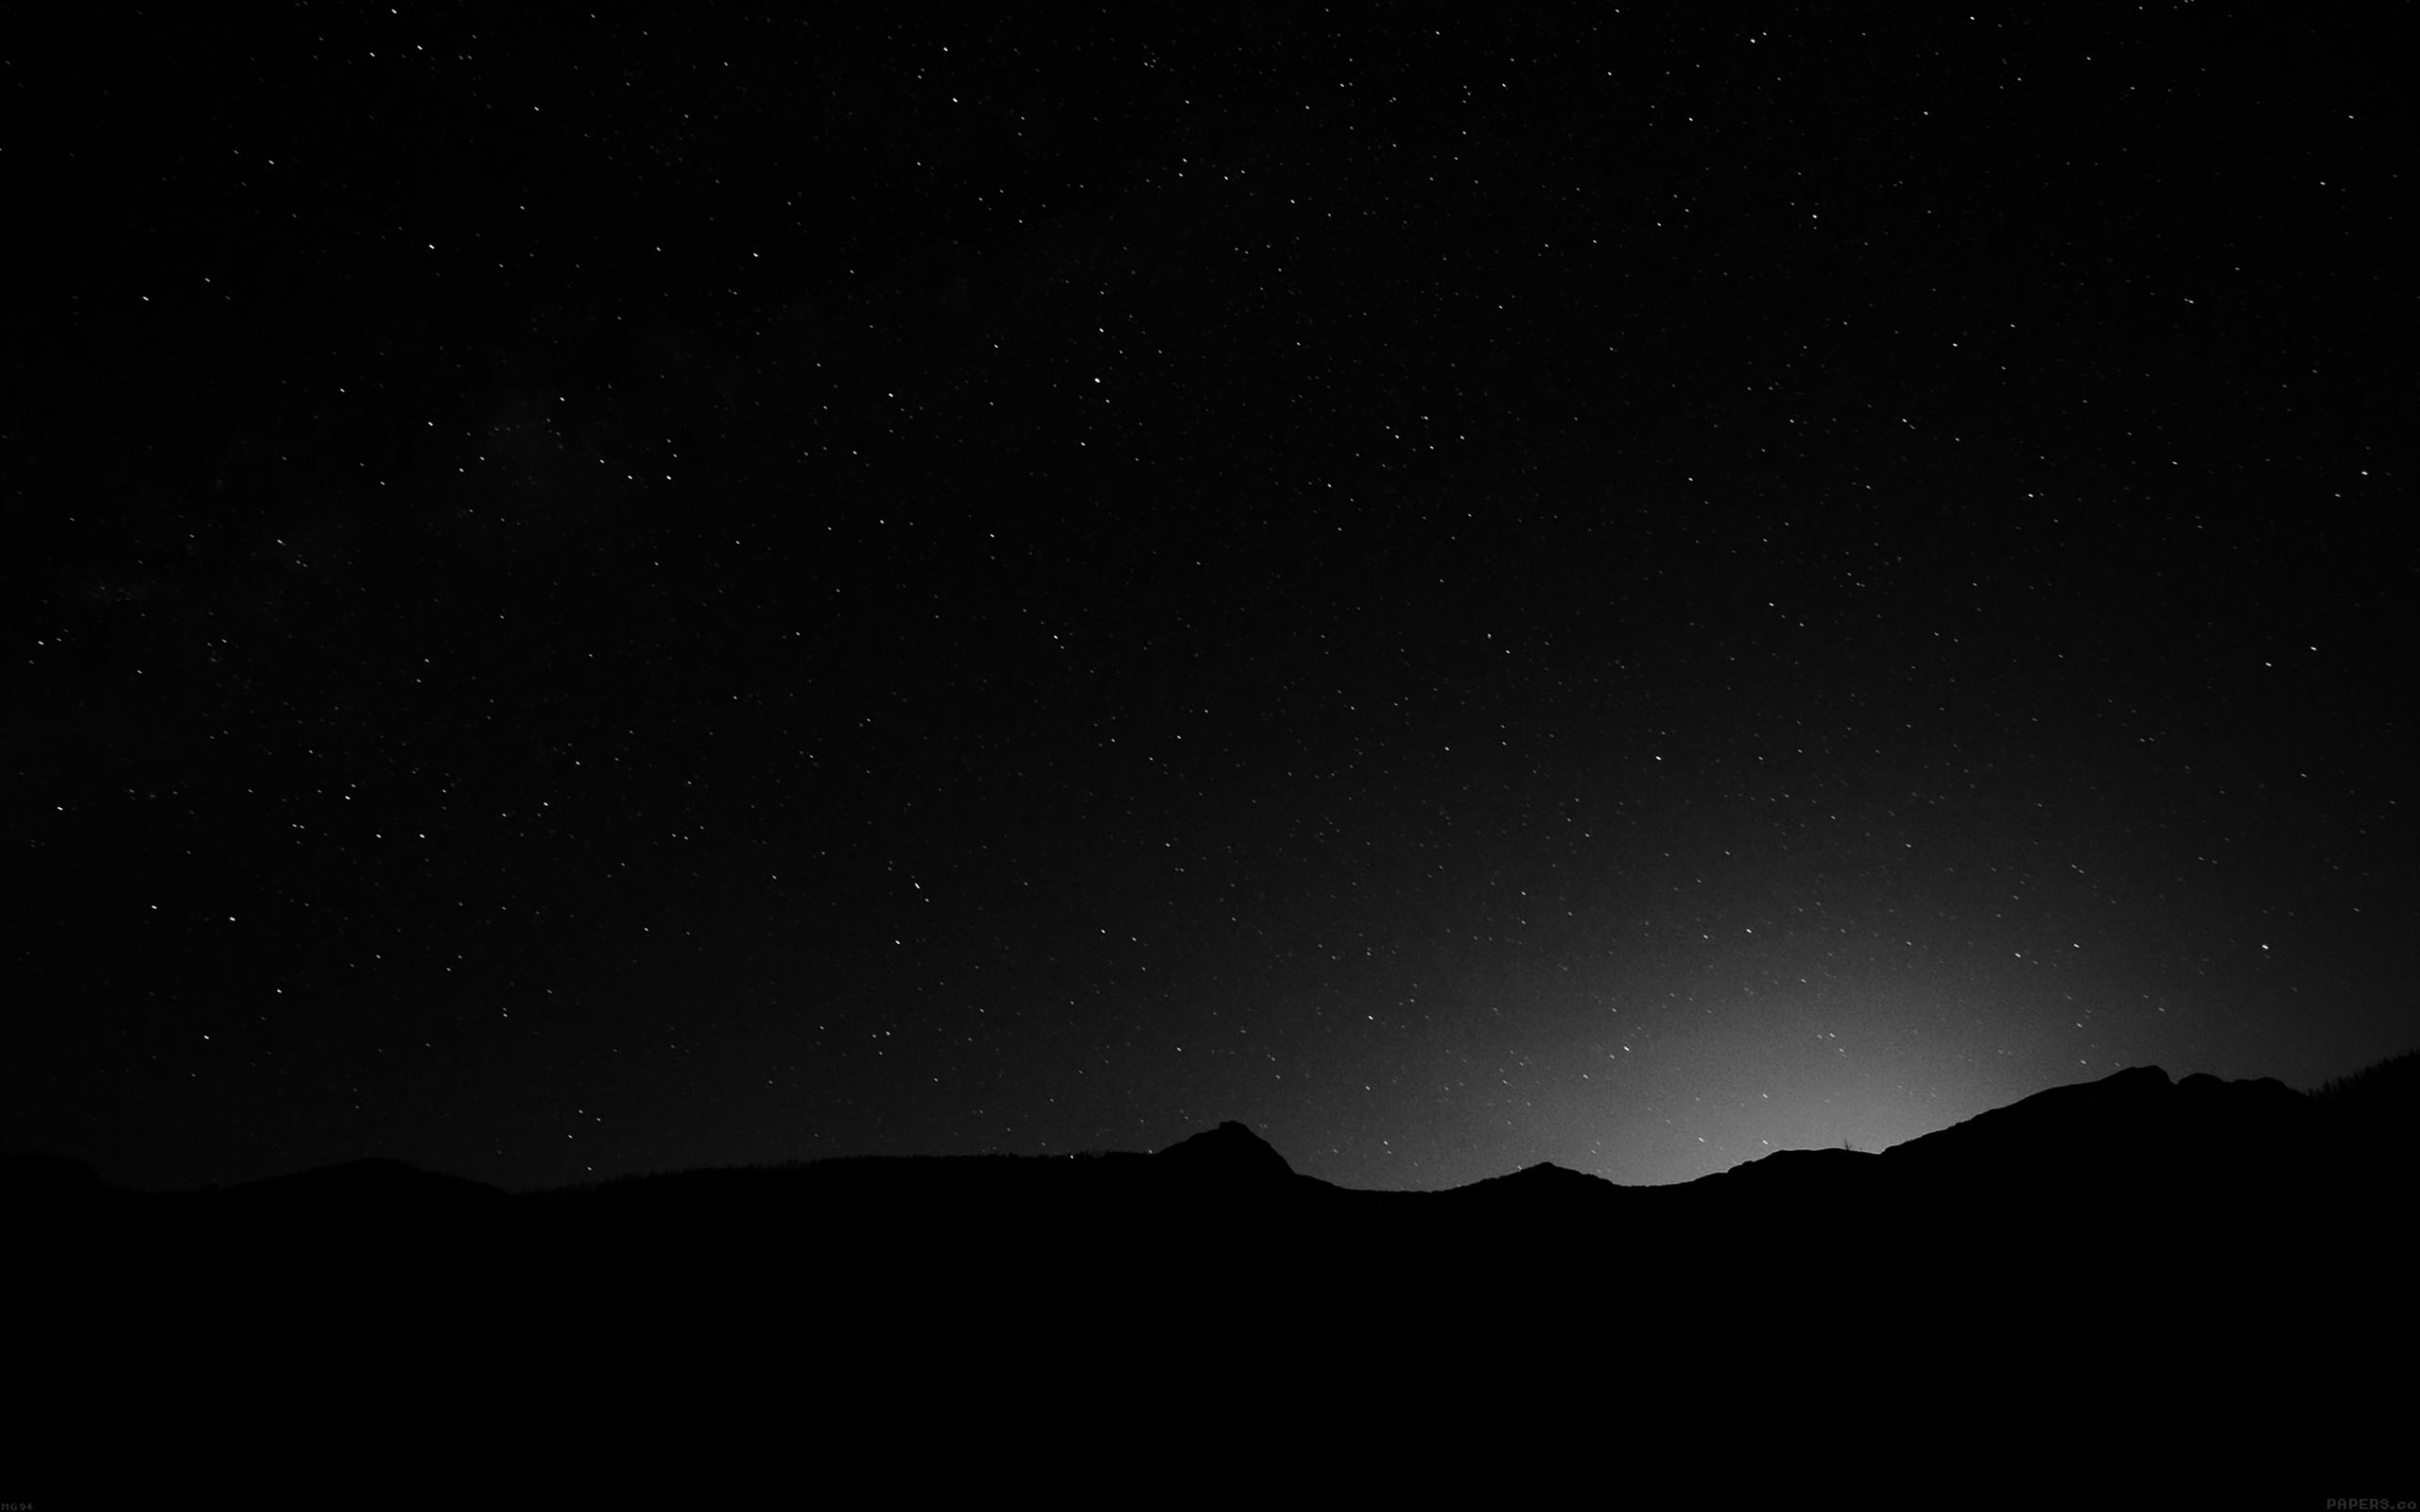 Mg94-night-sky-silent-wide-mountain-star-shining-nature